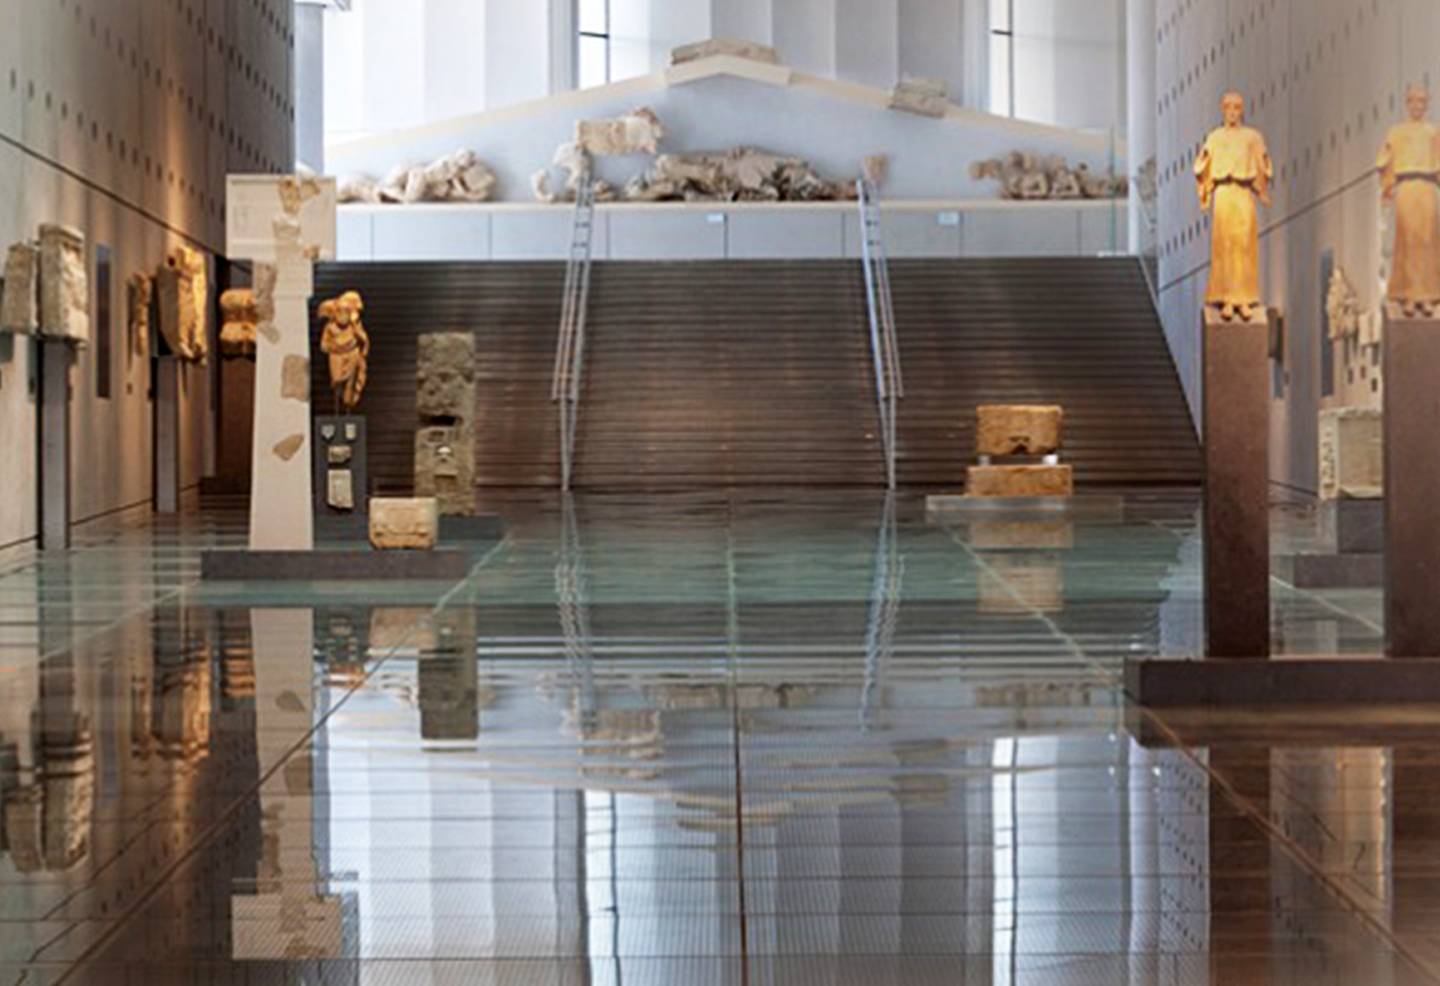 22 Top 5 Reasons to Visit the Acropolis Museum